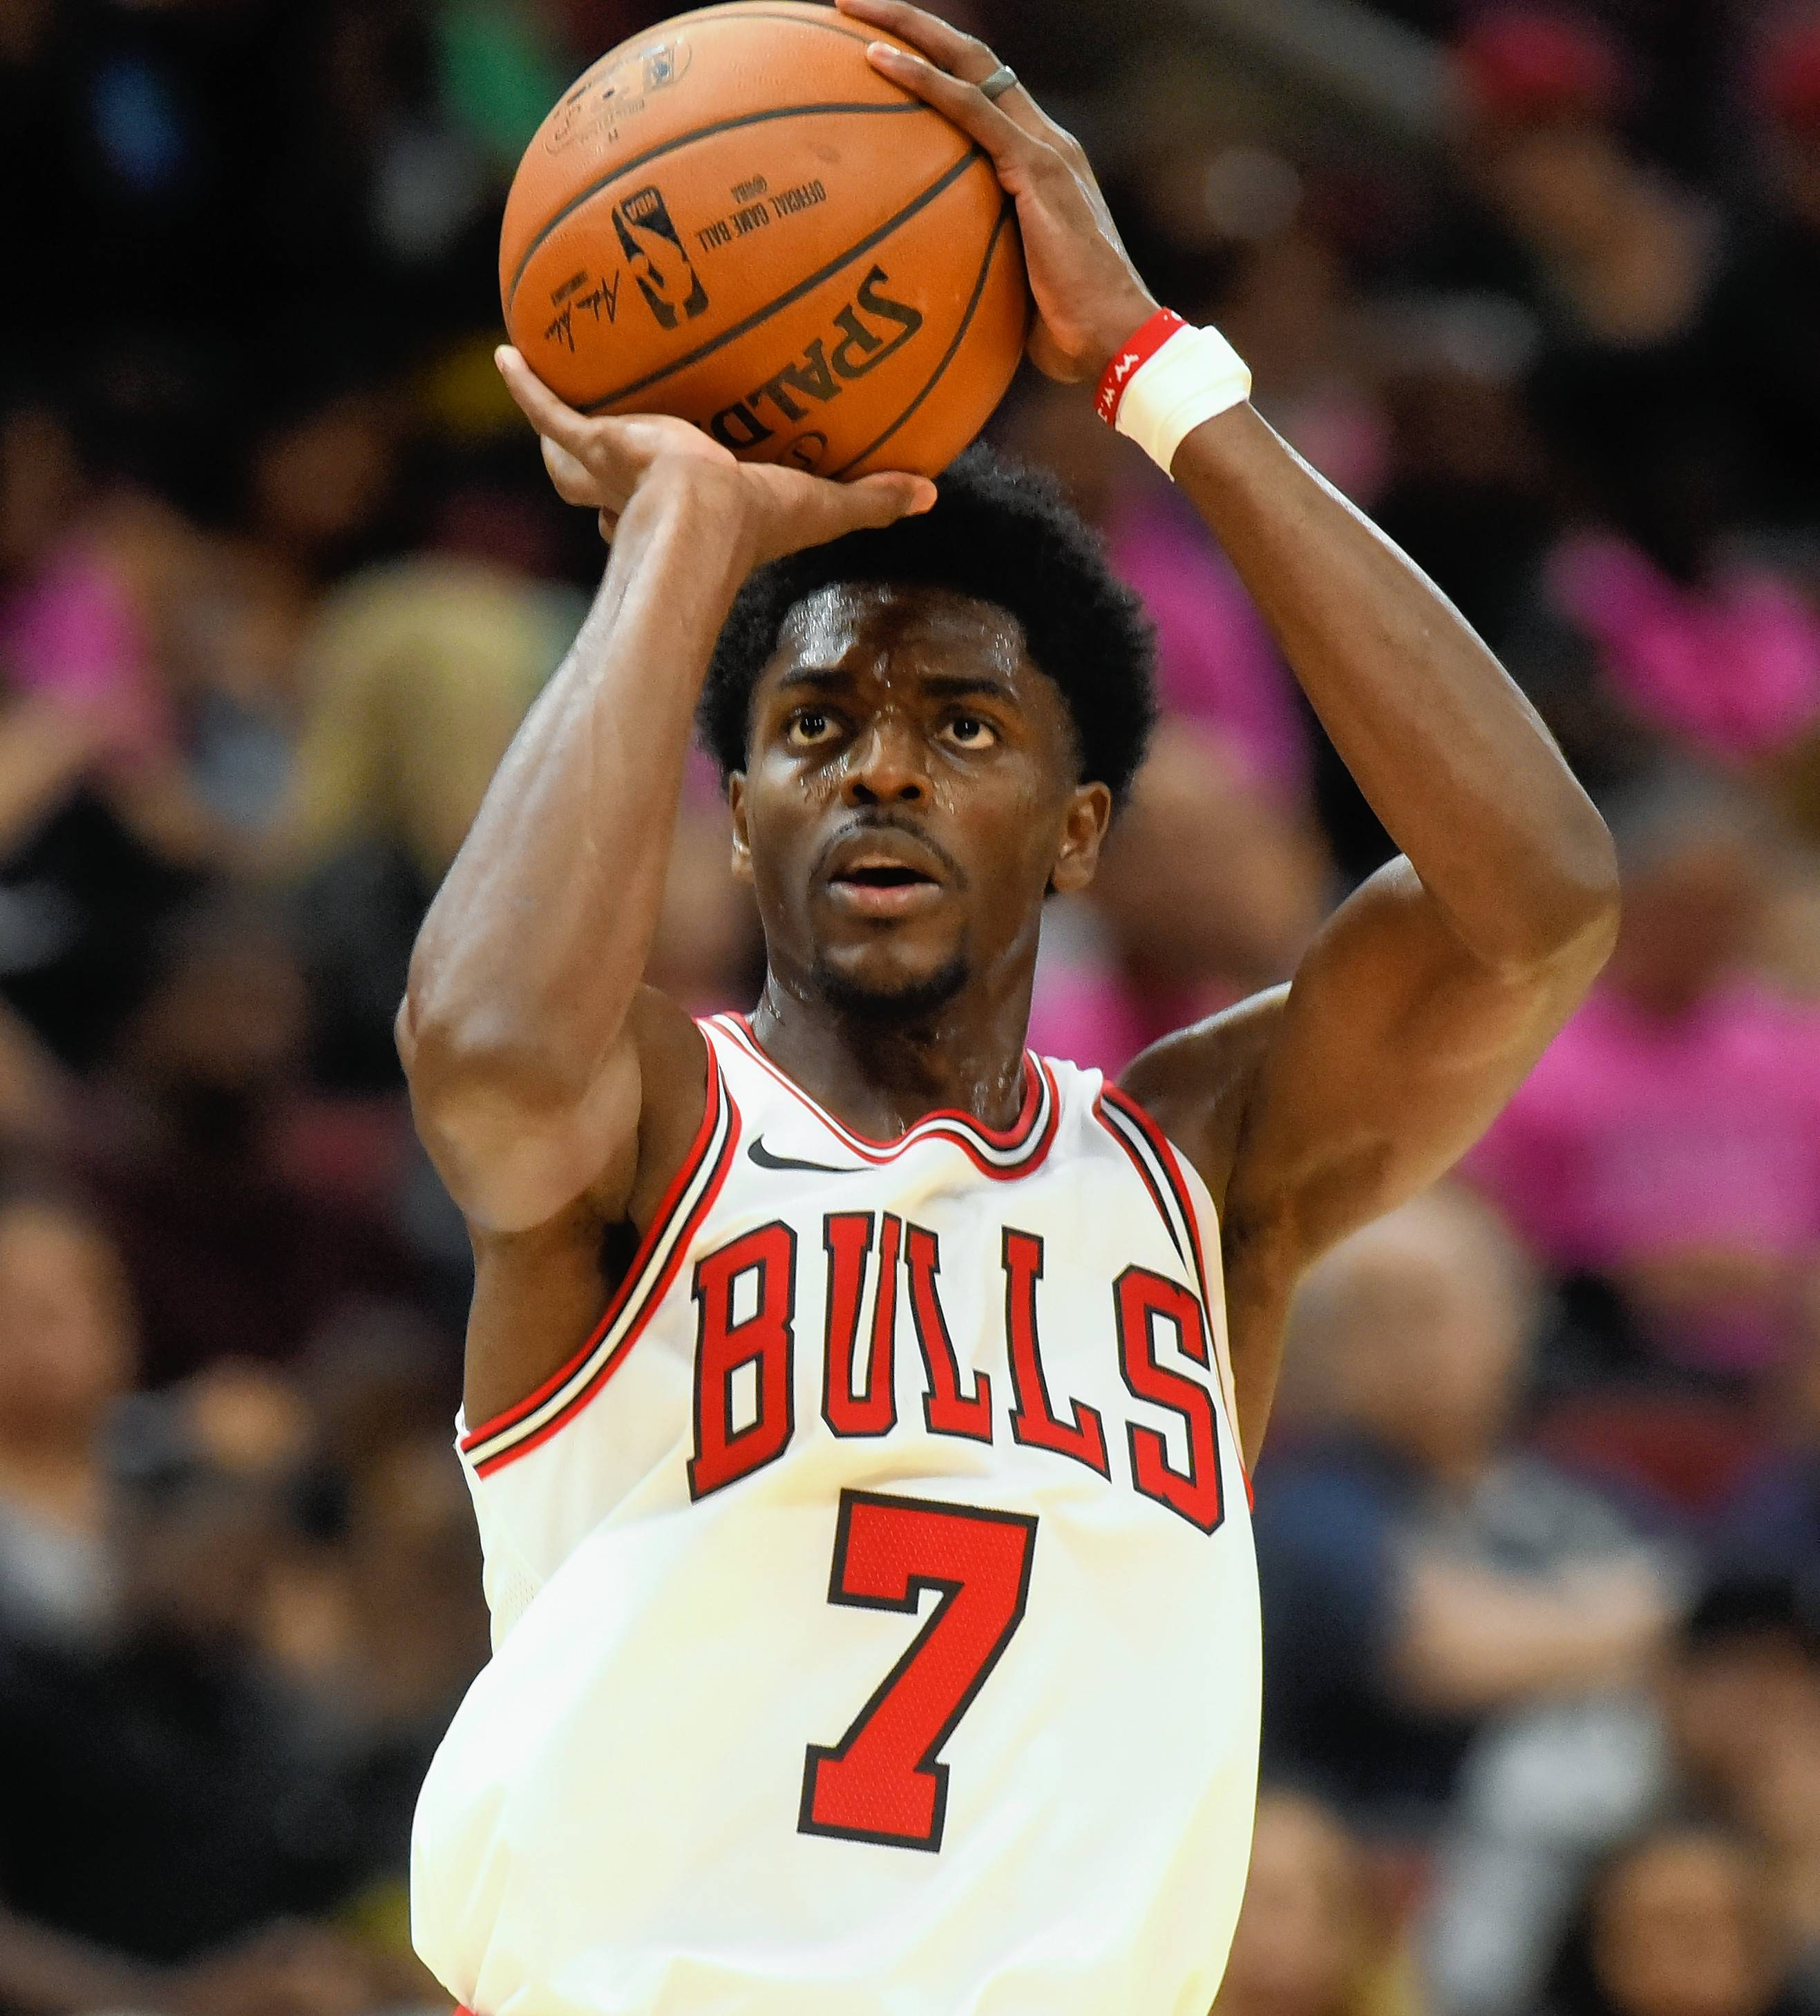 Chicago Bulls guard Justin Holiday average 17.2 points per game during the NBA preseason.